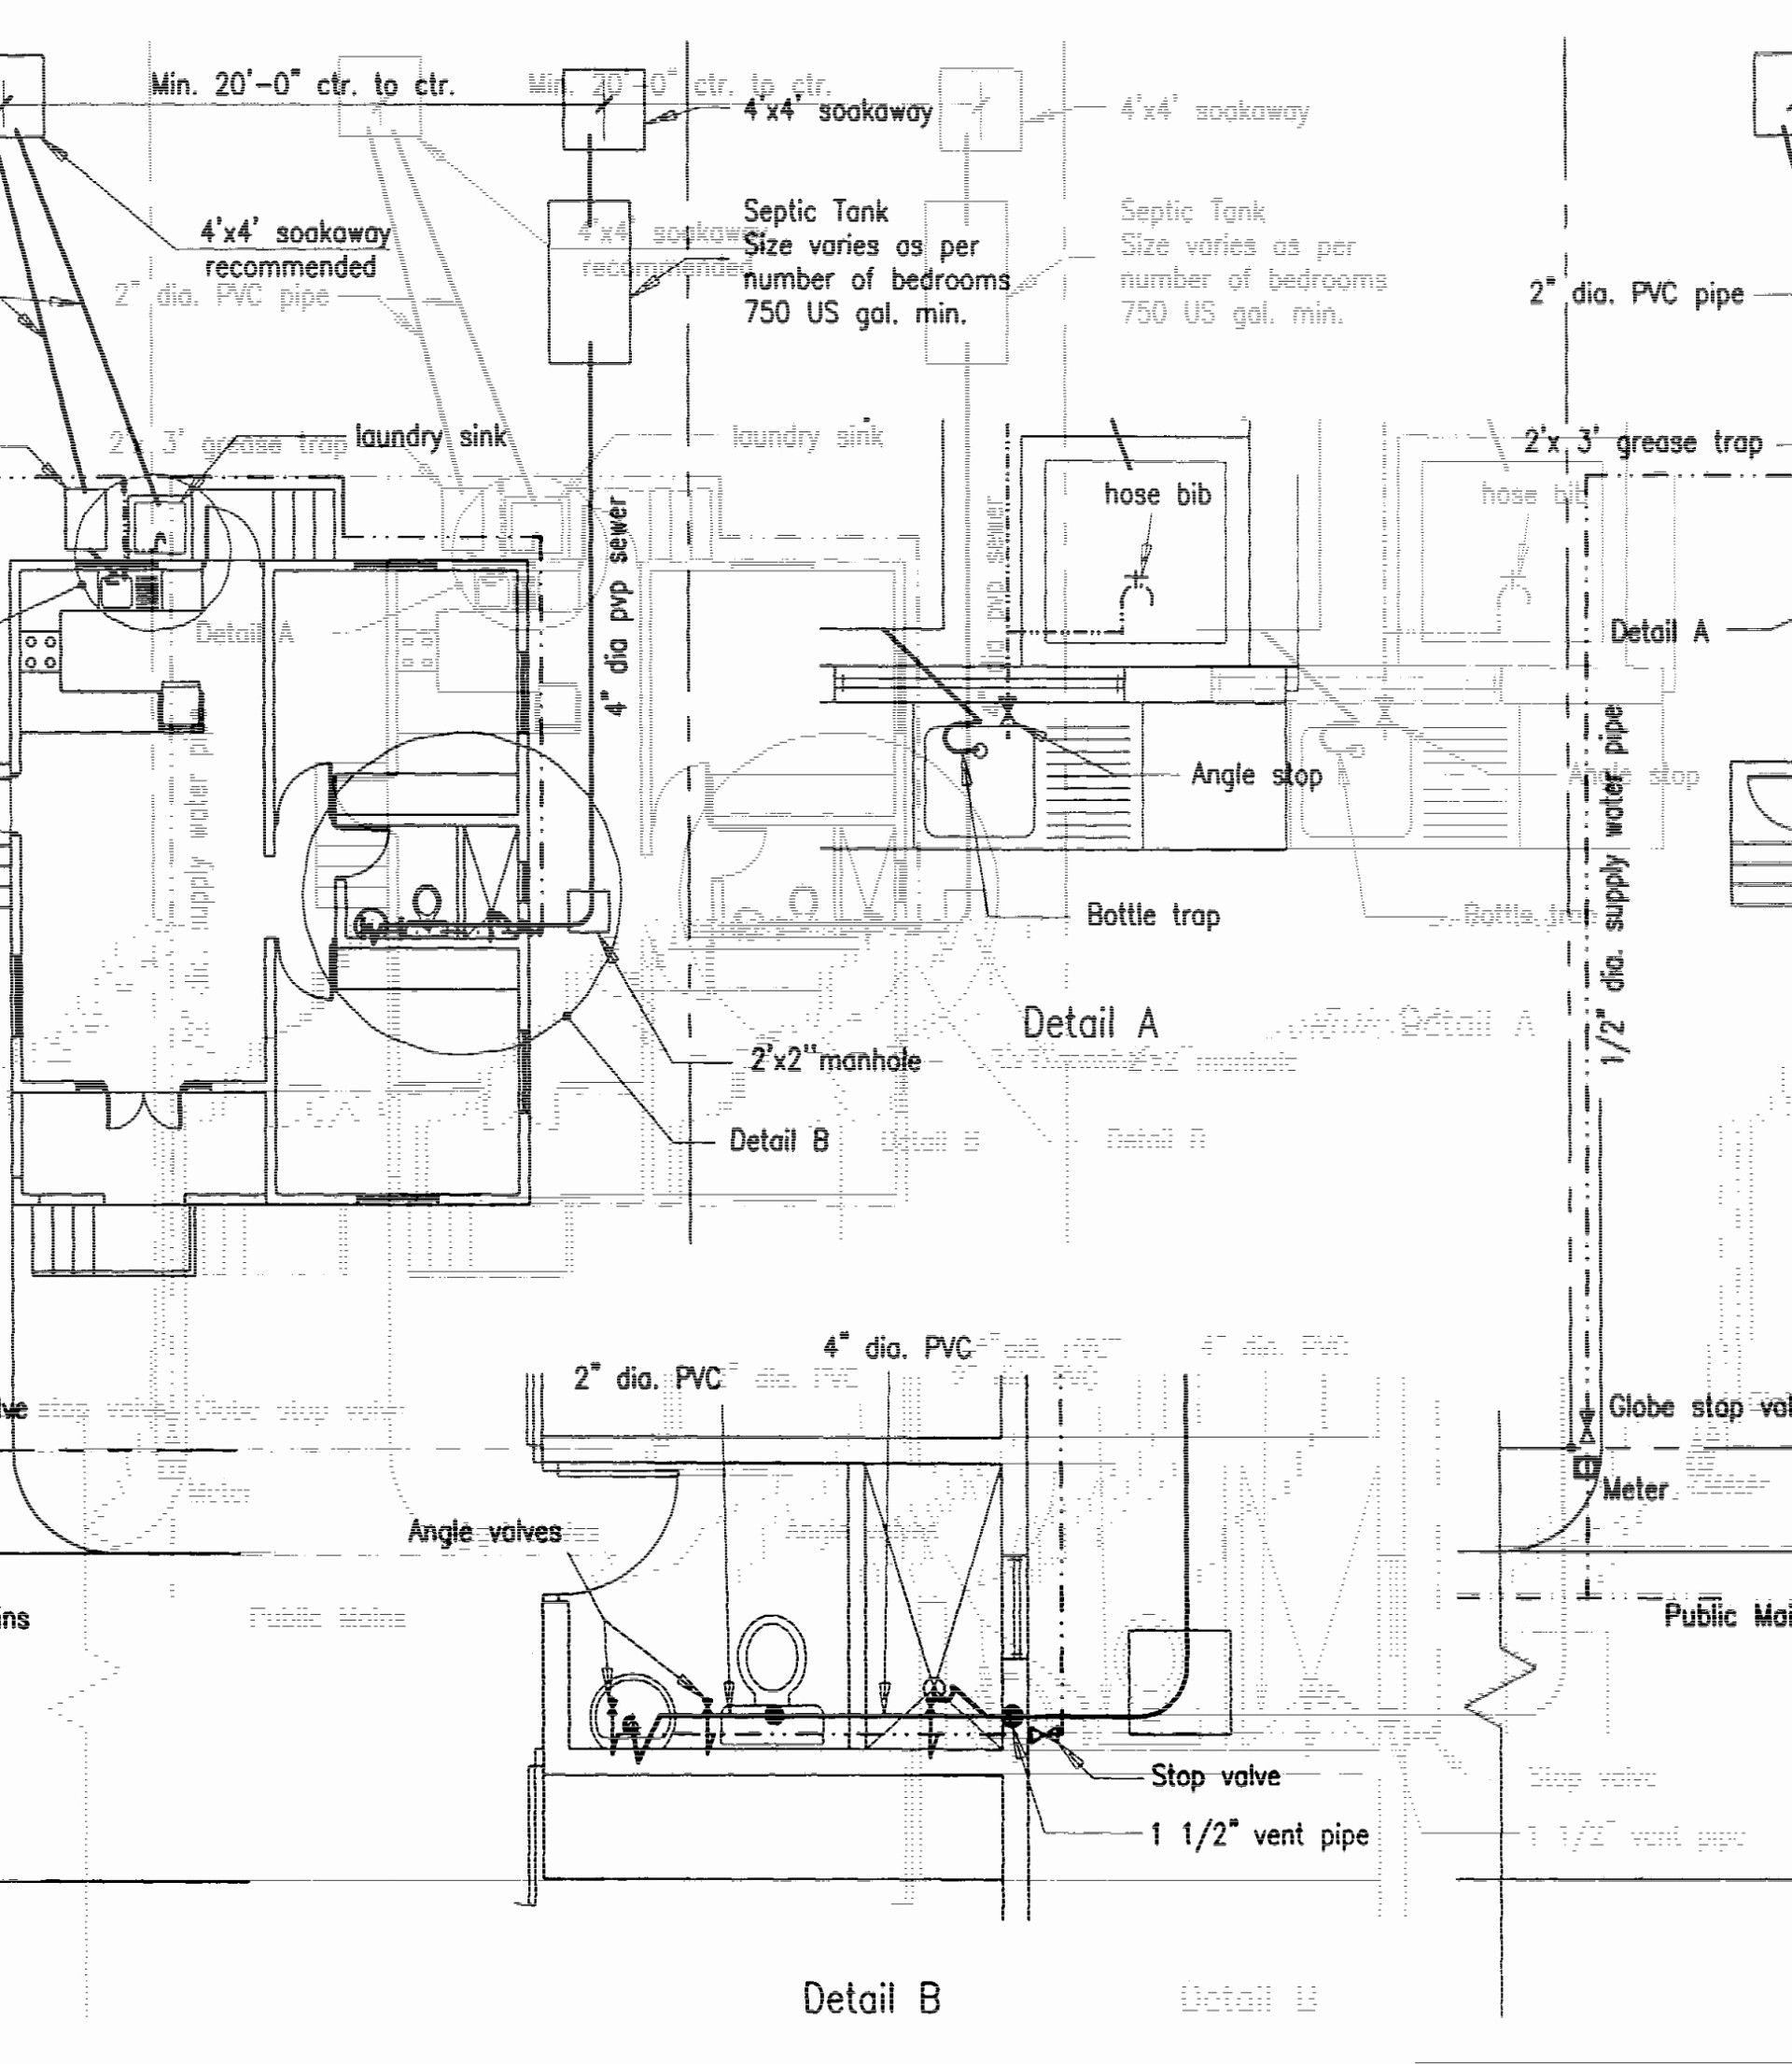 Unique Electrical Riser Diagram Template Diagram Wiringdiagram Diagramming Diagramm Visuals Visualisation Graph Diagram Designs To Draw Building Drawing